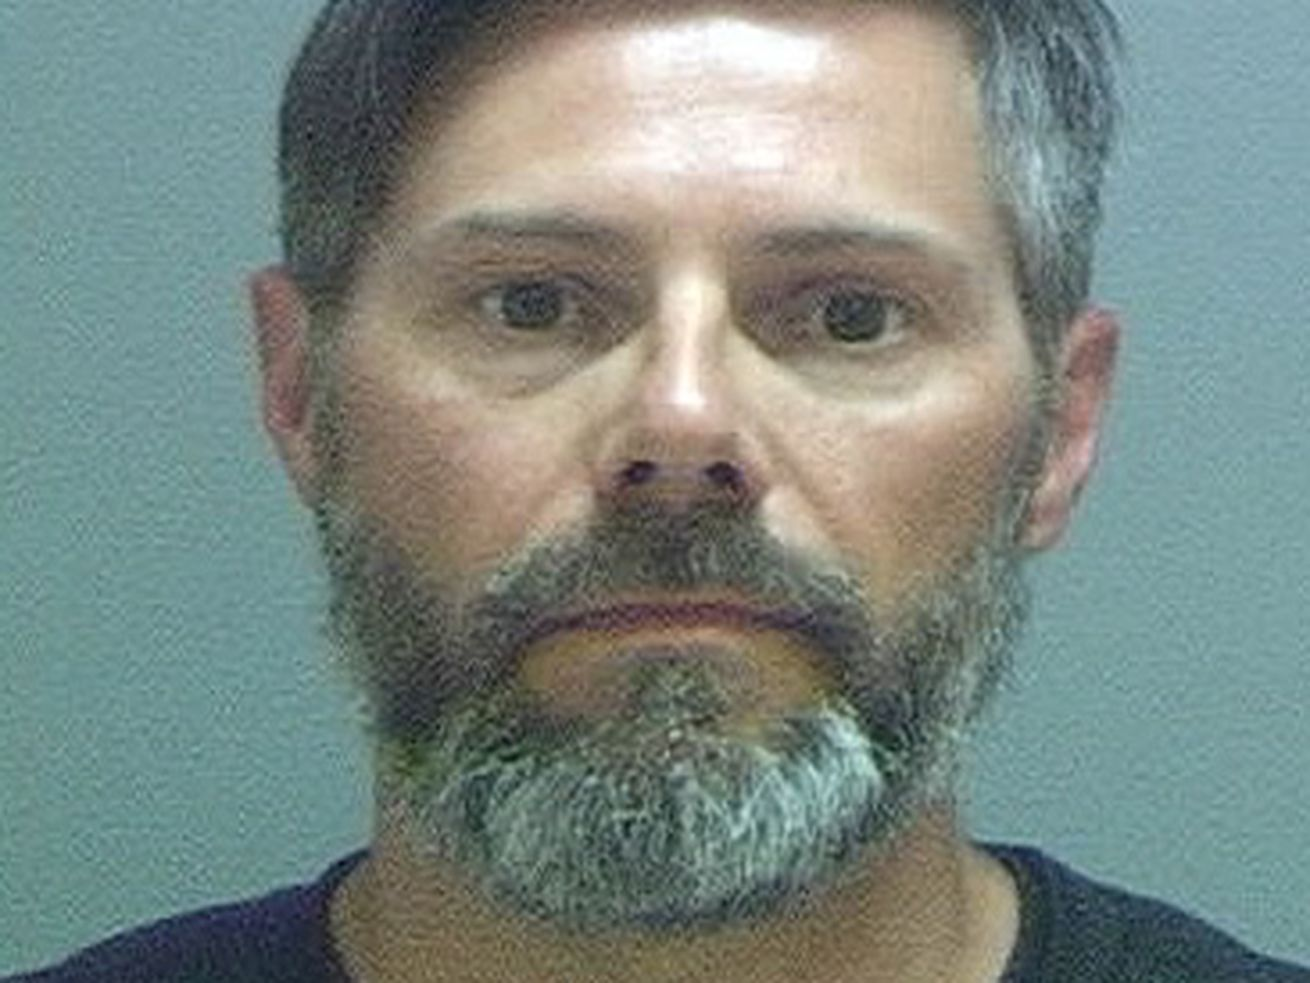 Kenneth James Vester is facing charges after police say he raped a 15-year-old girl.